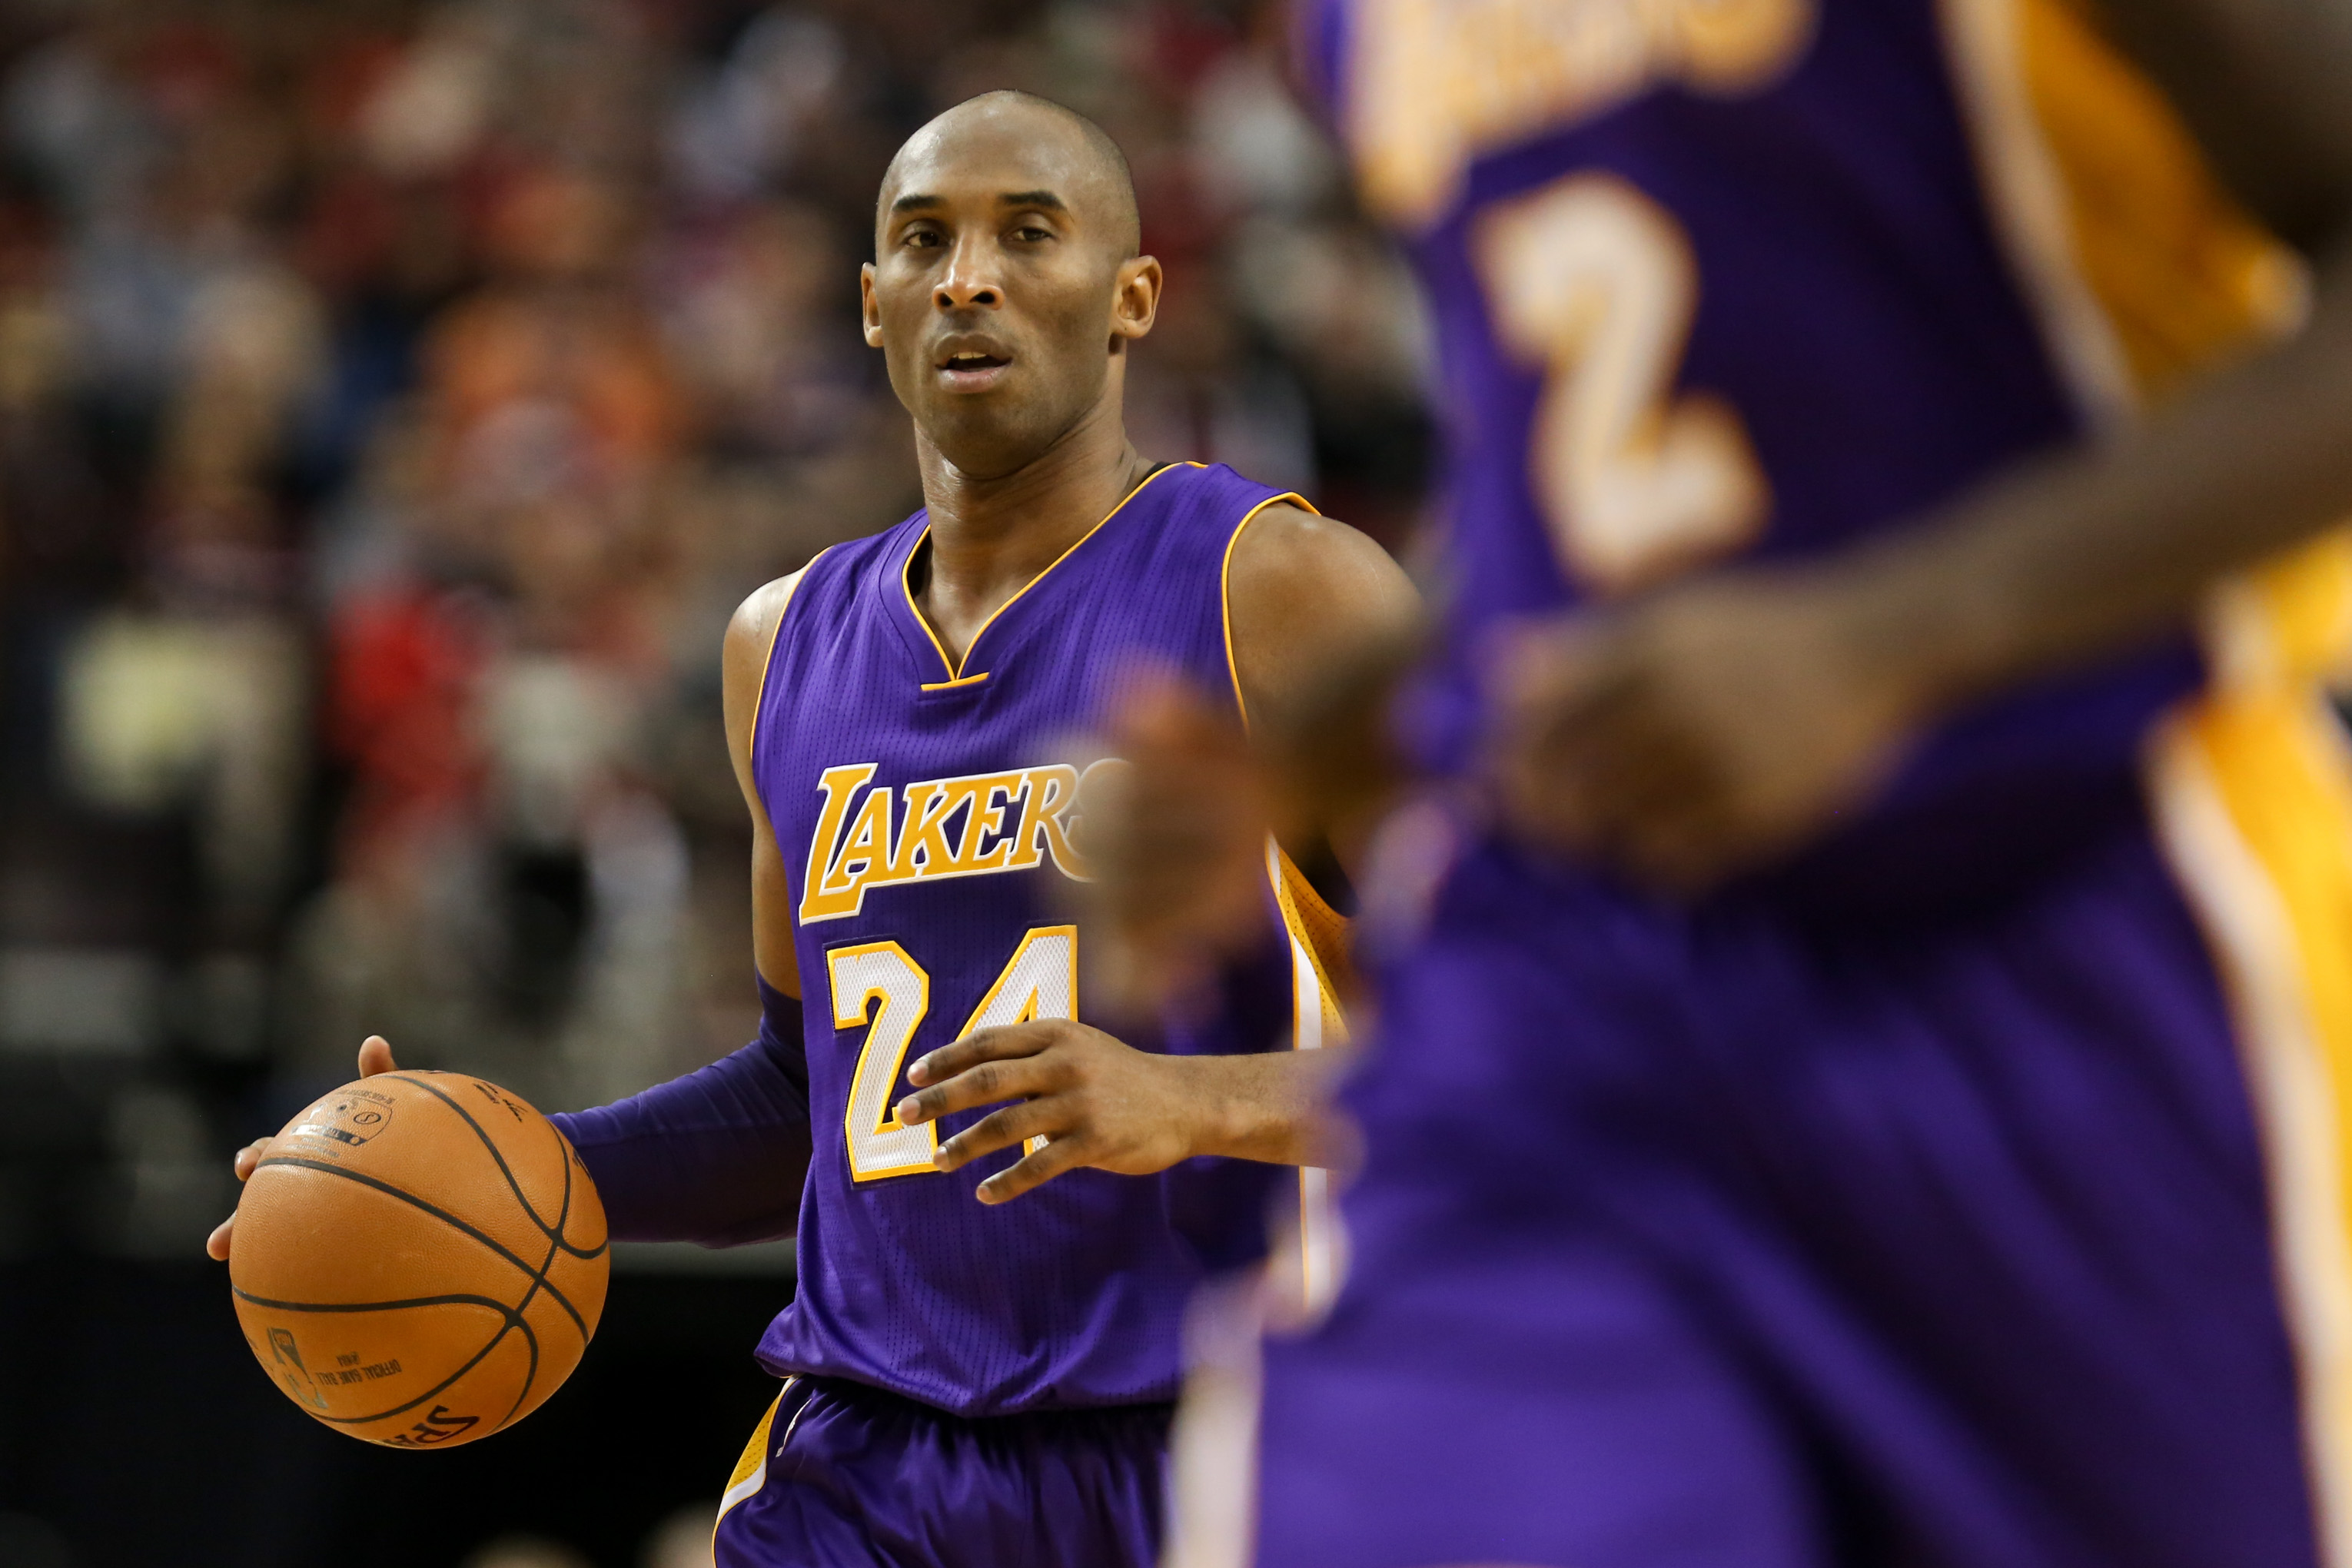 Kobe Bryant during a game between the Portland Trailblazers and the Los Angeles Lakers at the Moda Center on Nov. 28, 2015 — his last game before announcing that he would retire at the end of the season.